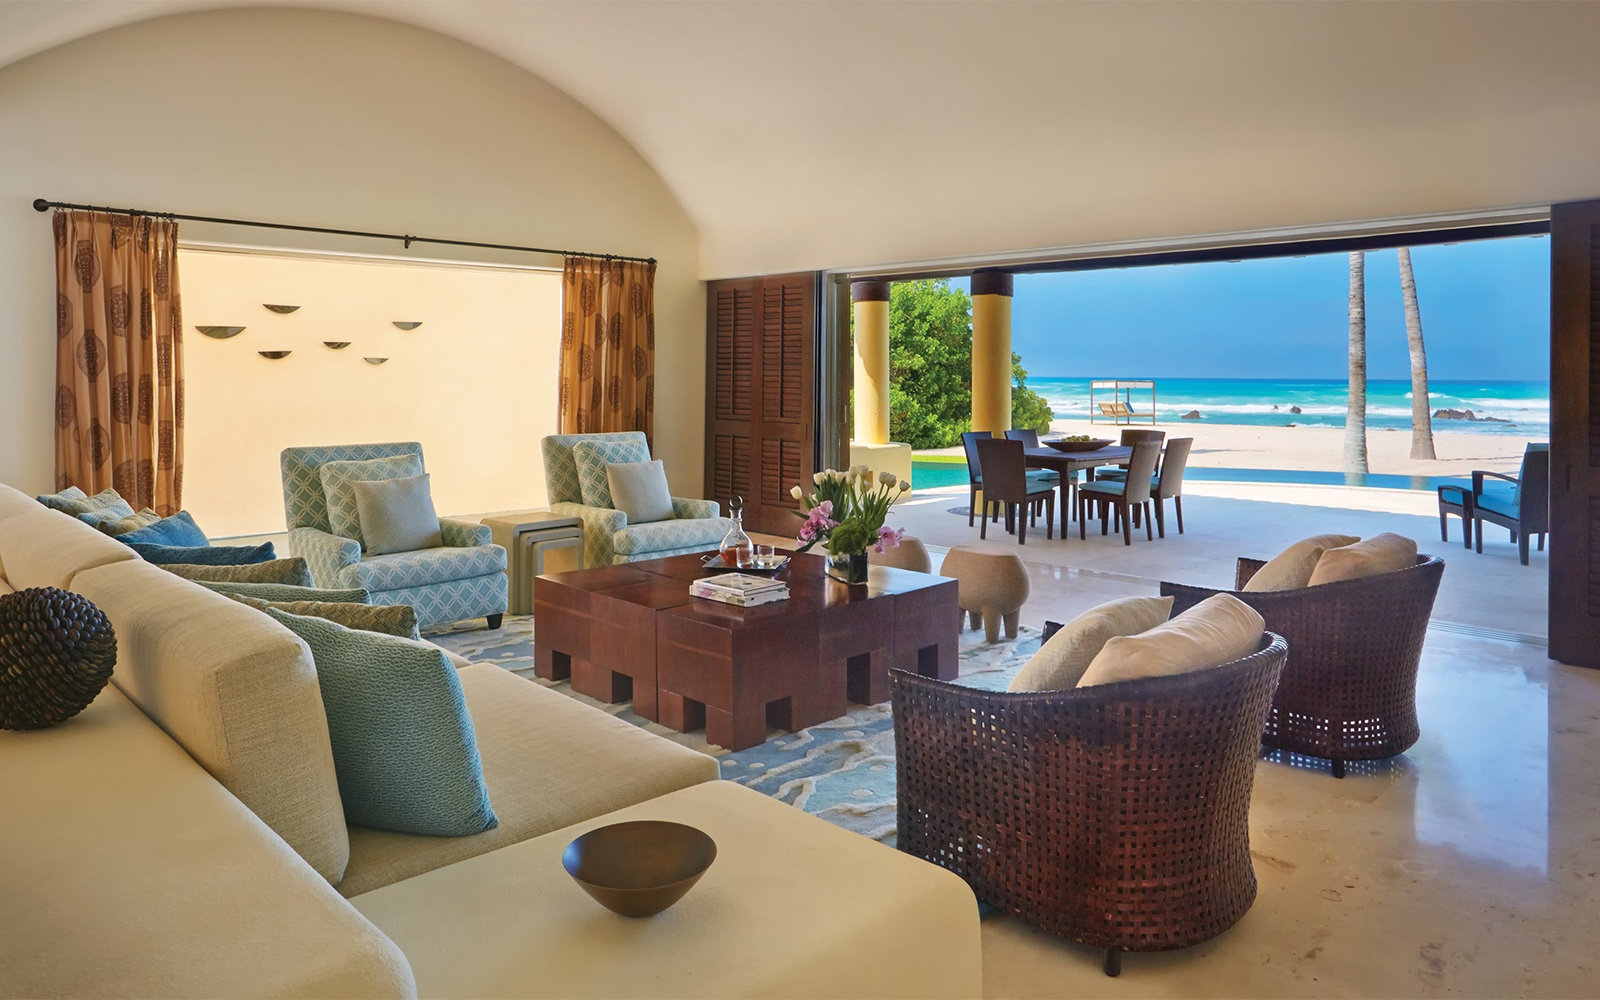 Best Hotel in Mexico: Four Seasons Punta Mita